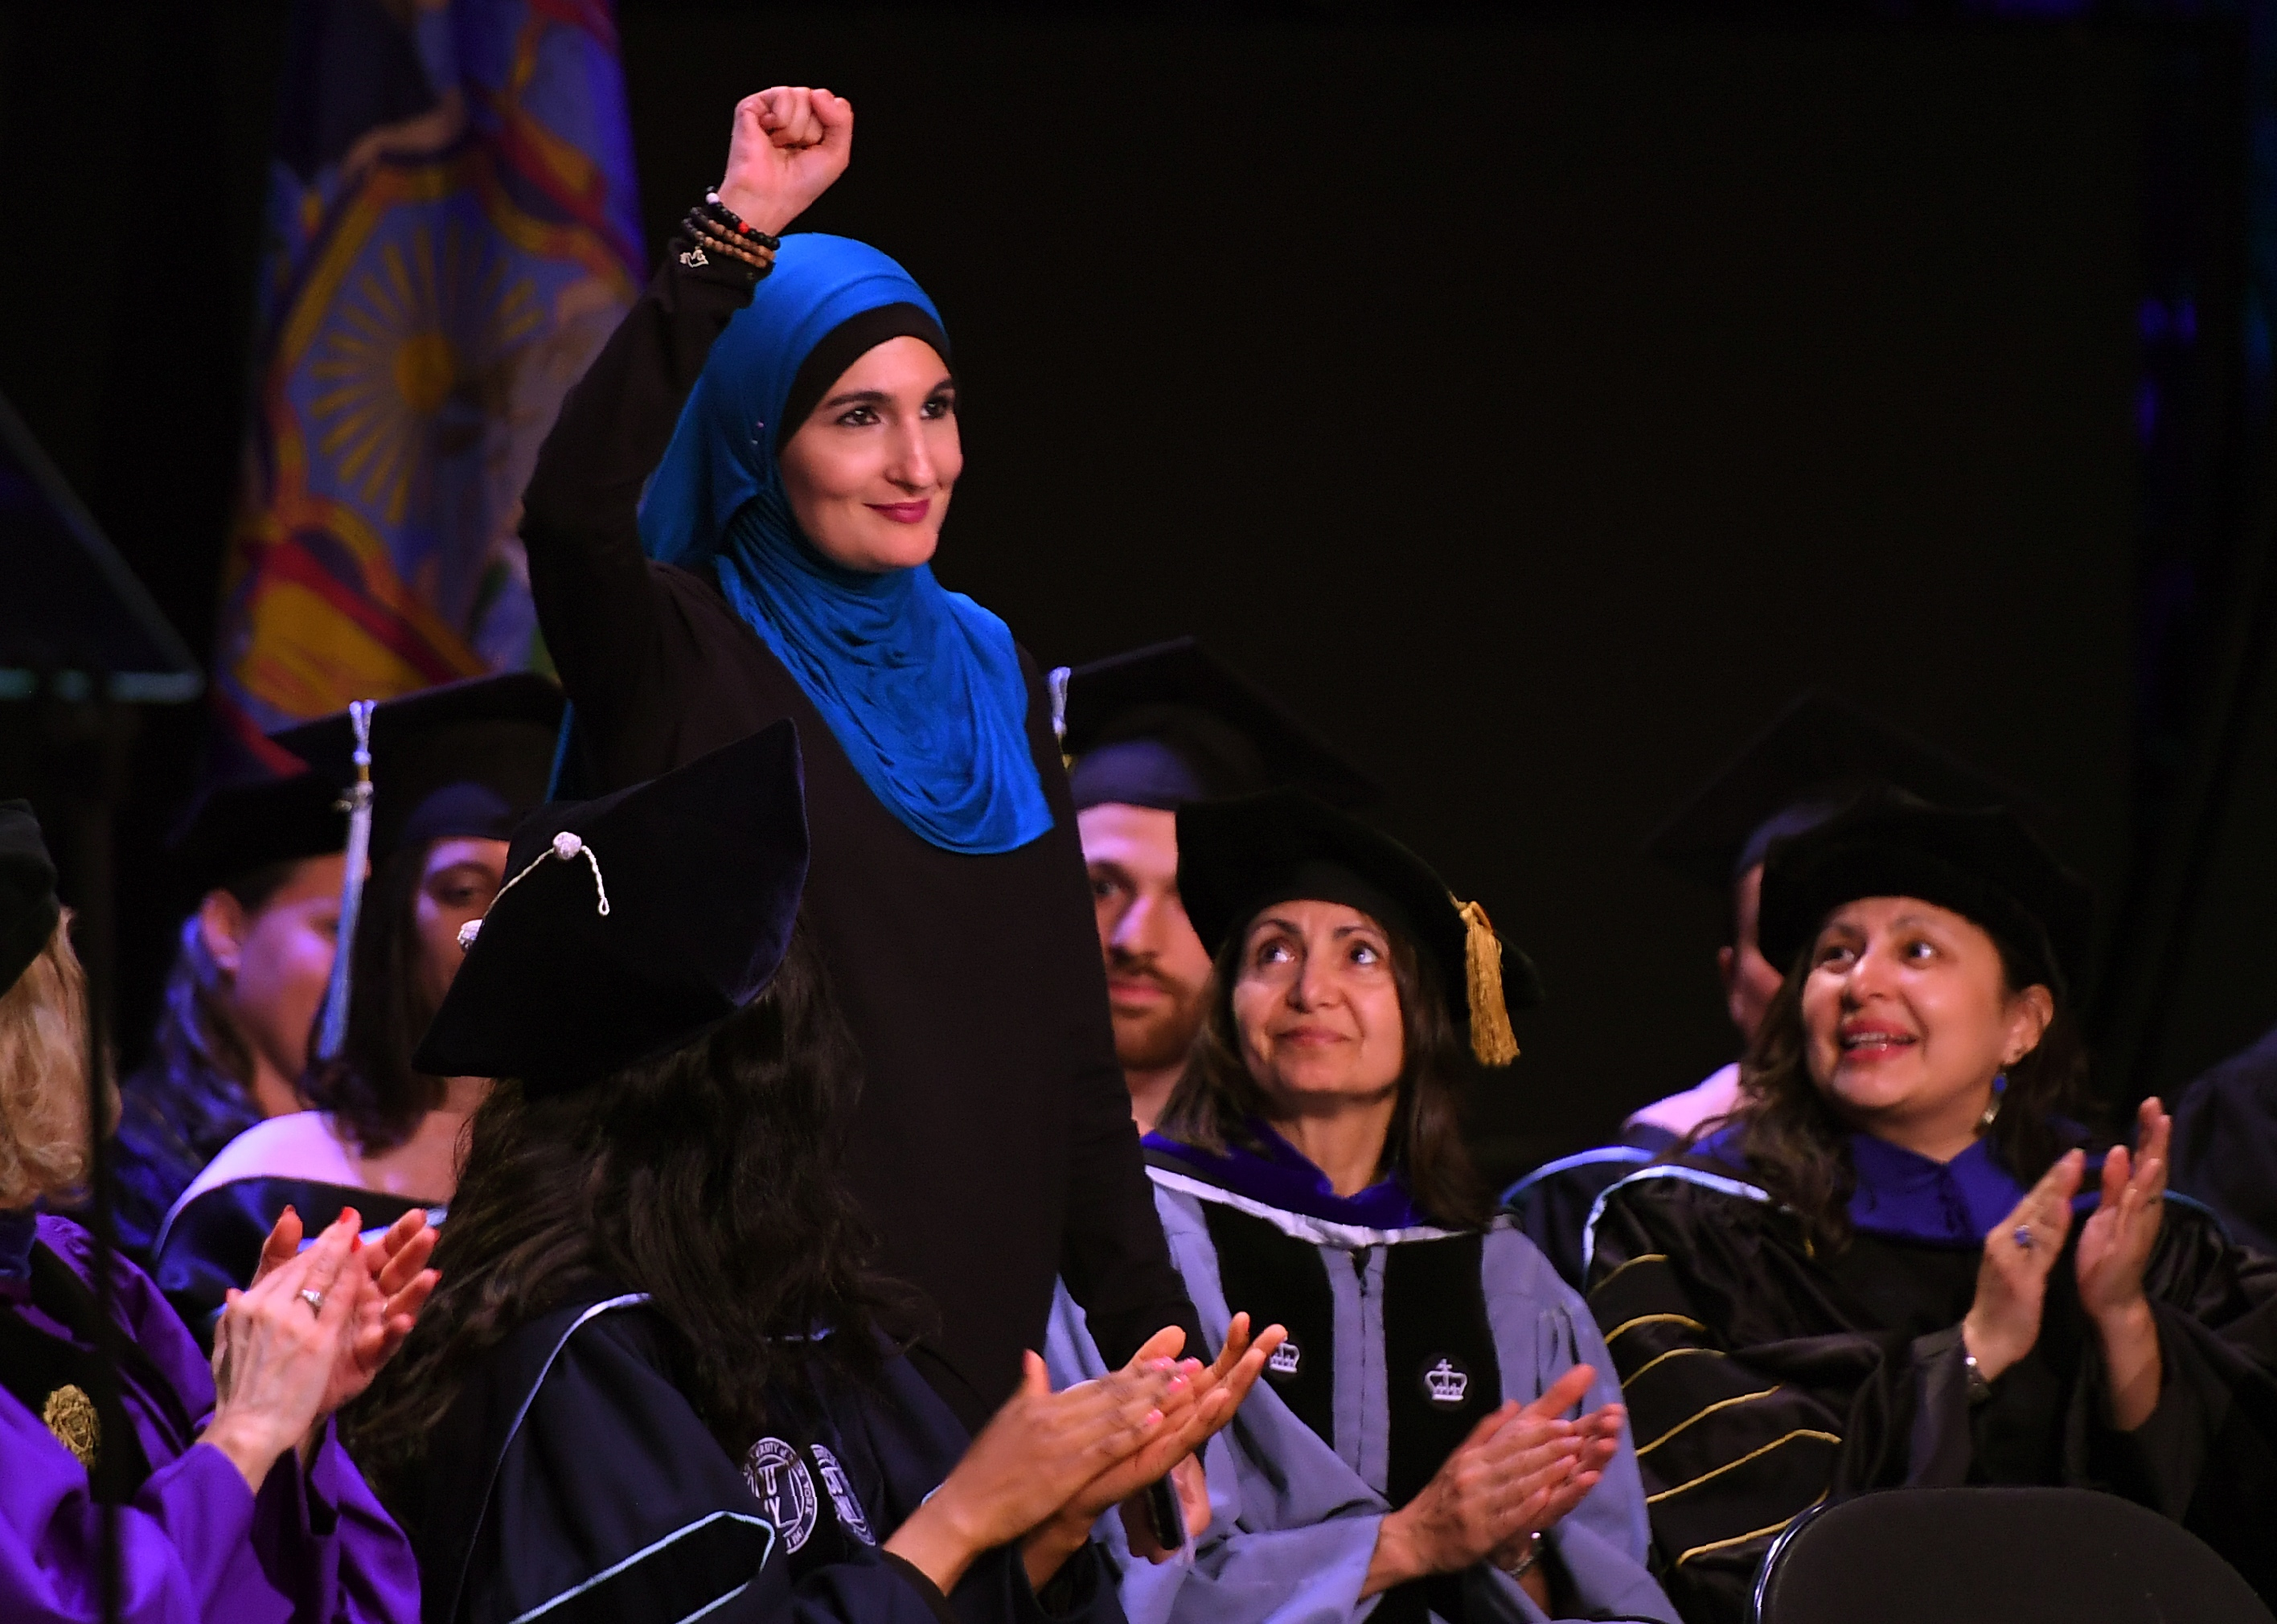 Linda Sarsour, co-organizer of the National Women's March, raises her fist as she walks to the stage to deliver the keynote address at the CUNY School of Public Health commencement ceremony on June 1, 2017 at the Apollo Theatre in Harlem.